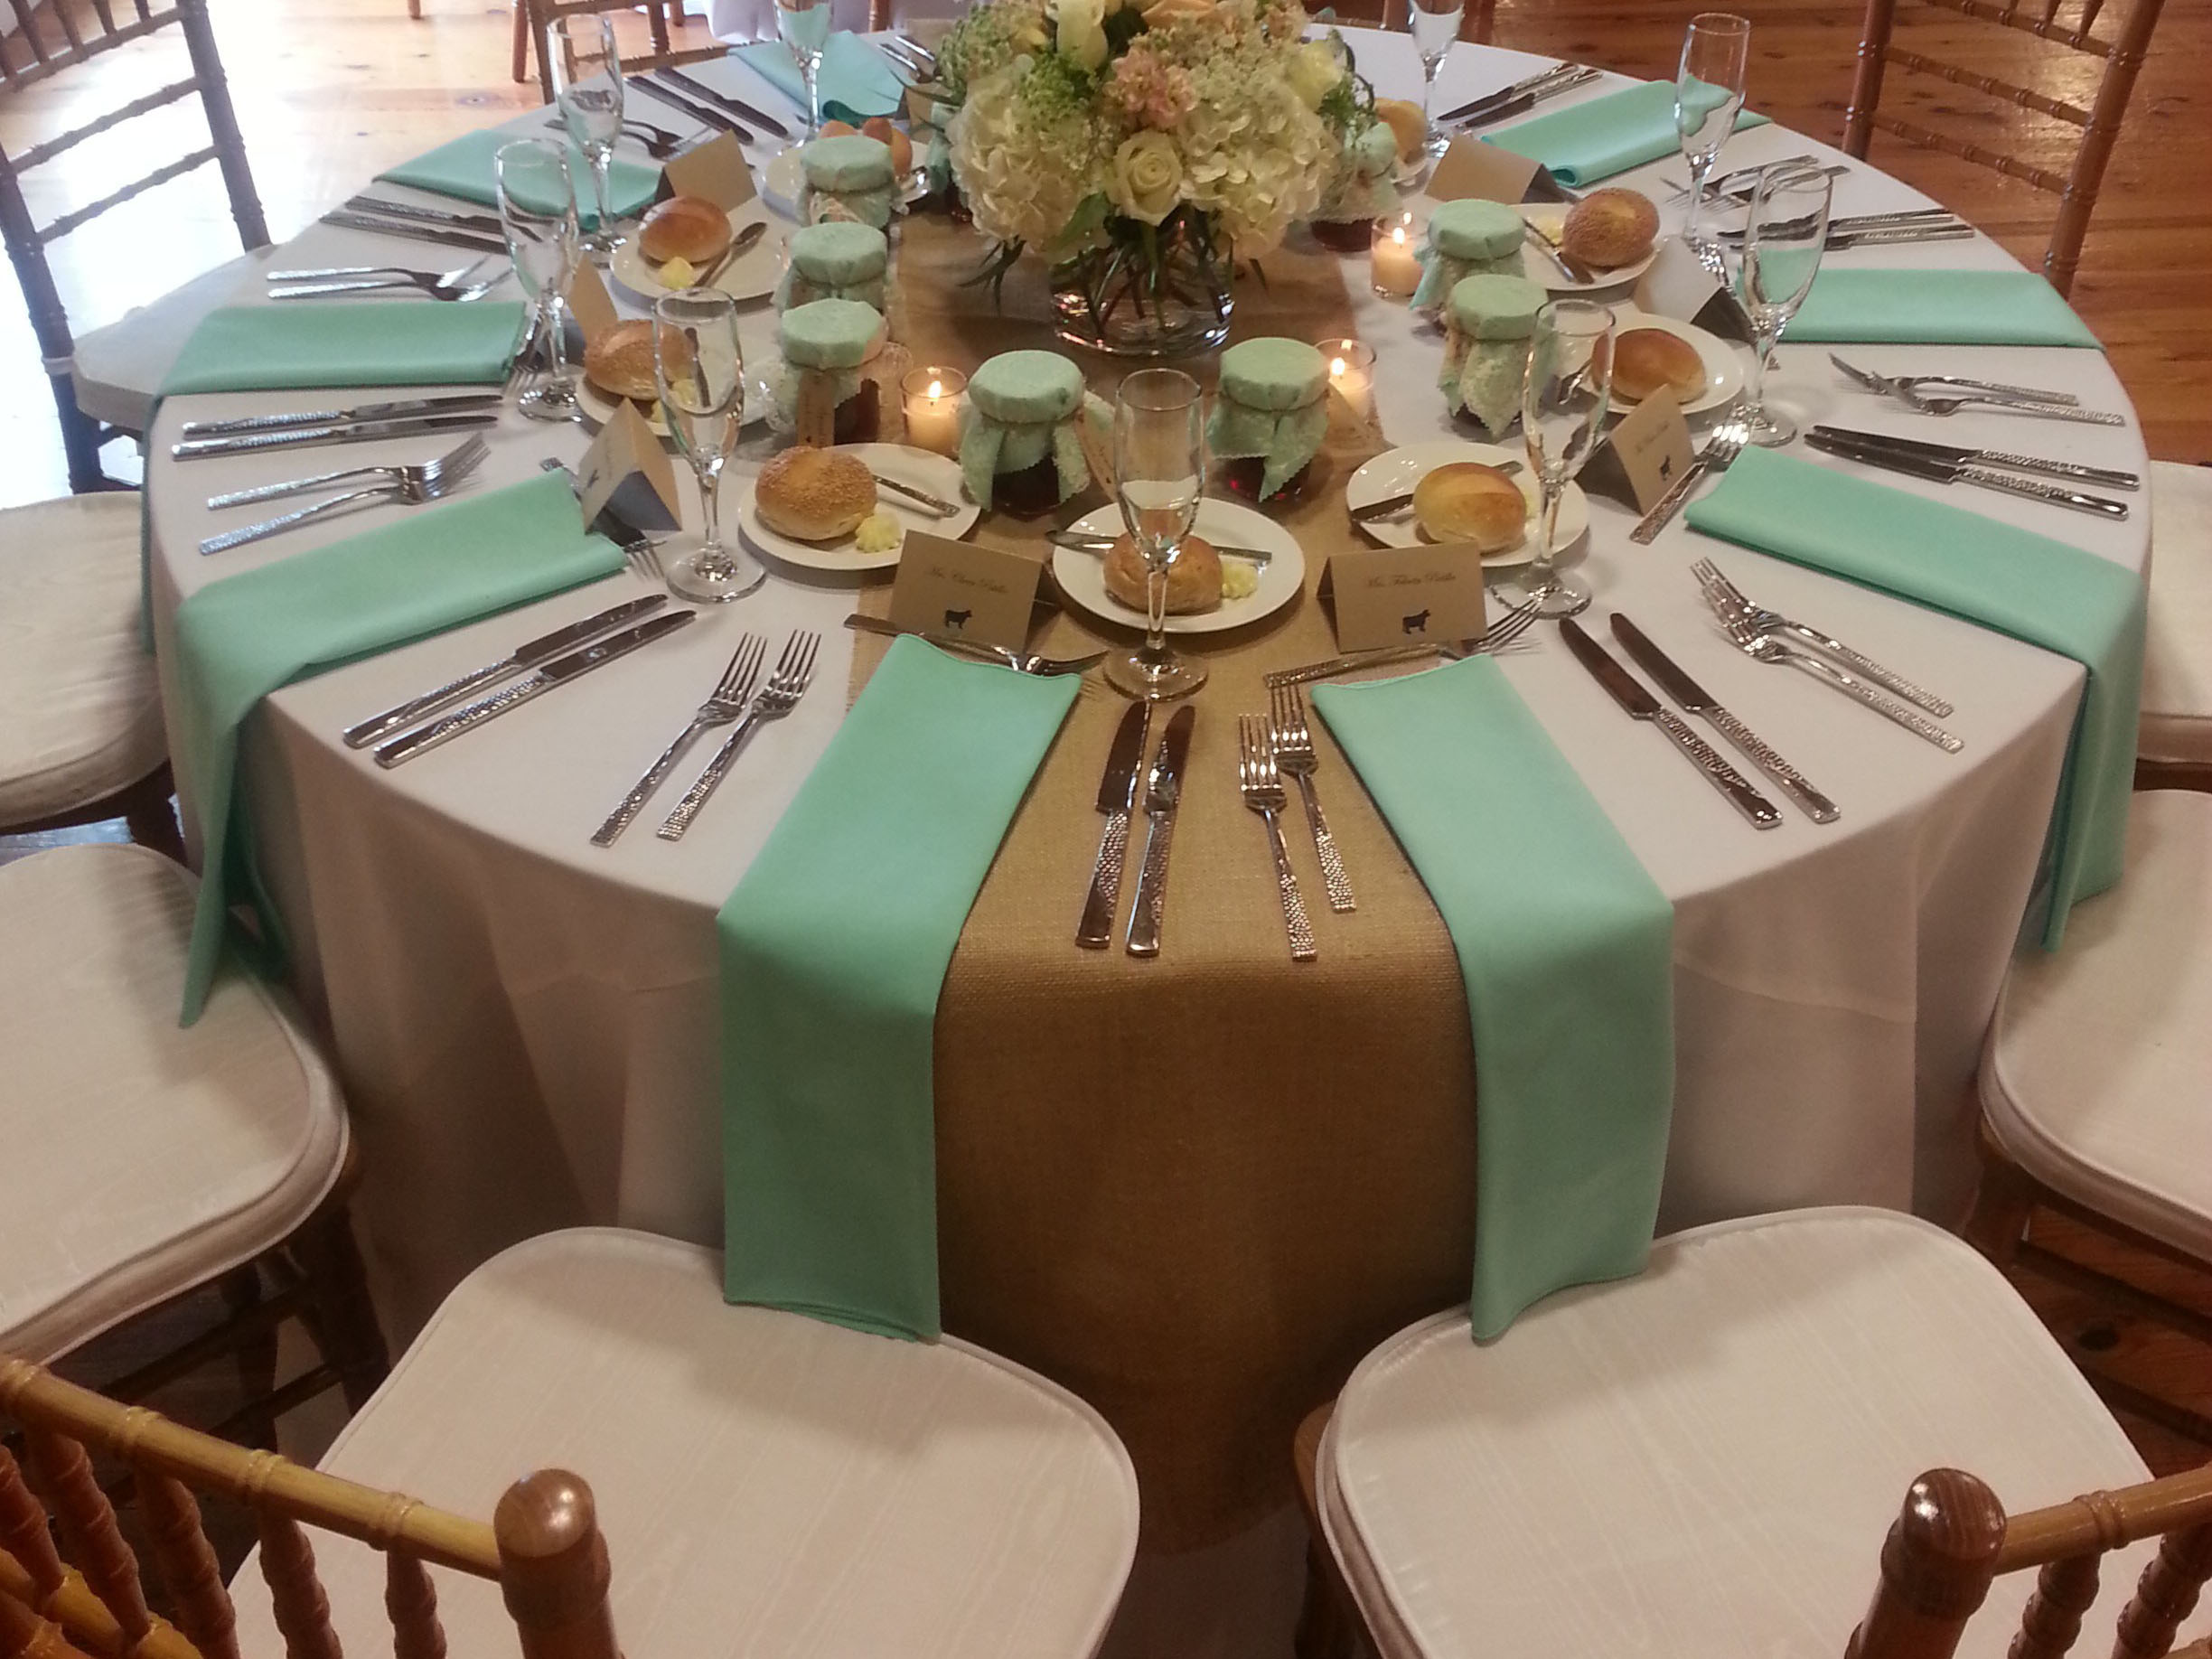 cheap chiavari chair rental miami vibrating recliner massage linen rentals in south florida rent table overlay at